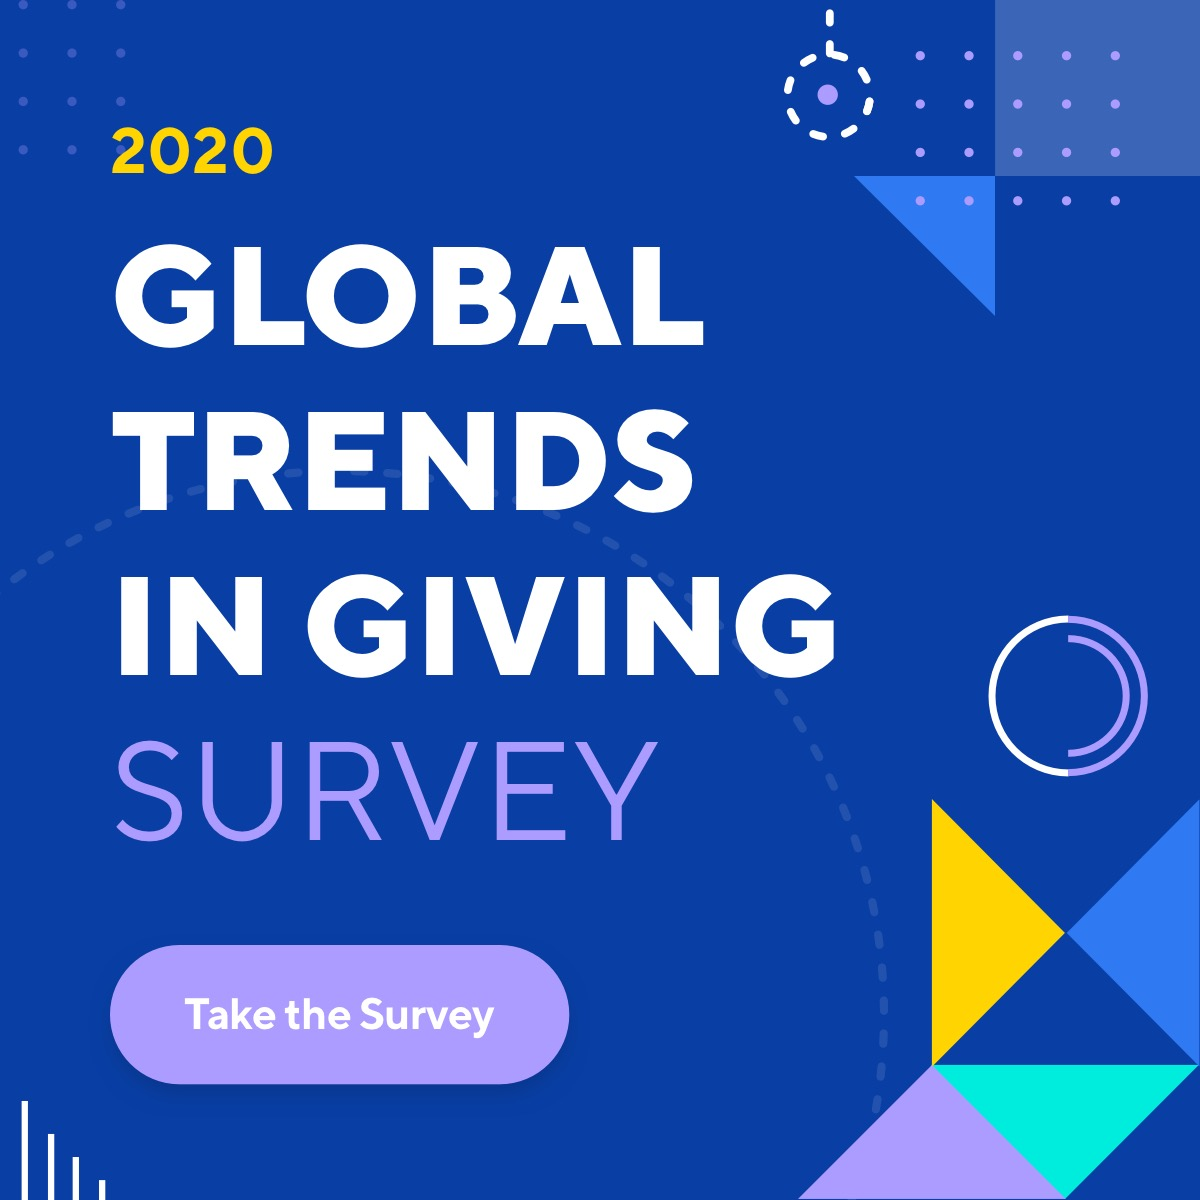 Quick Favor Please! Take the 2020 Global Trends in Giving Survey